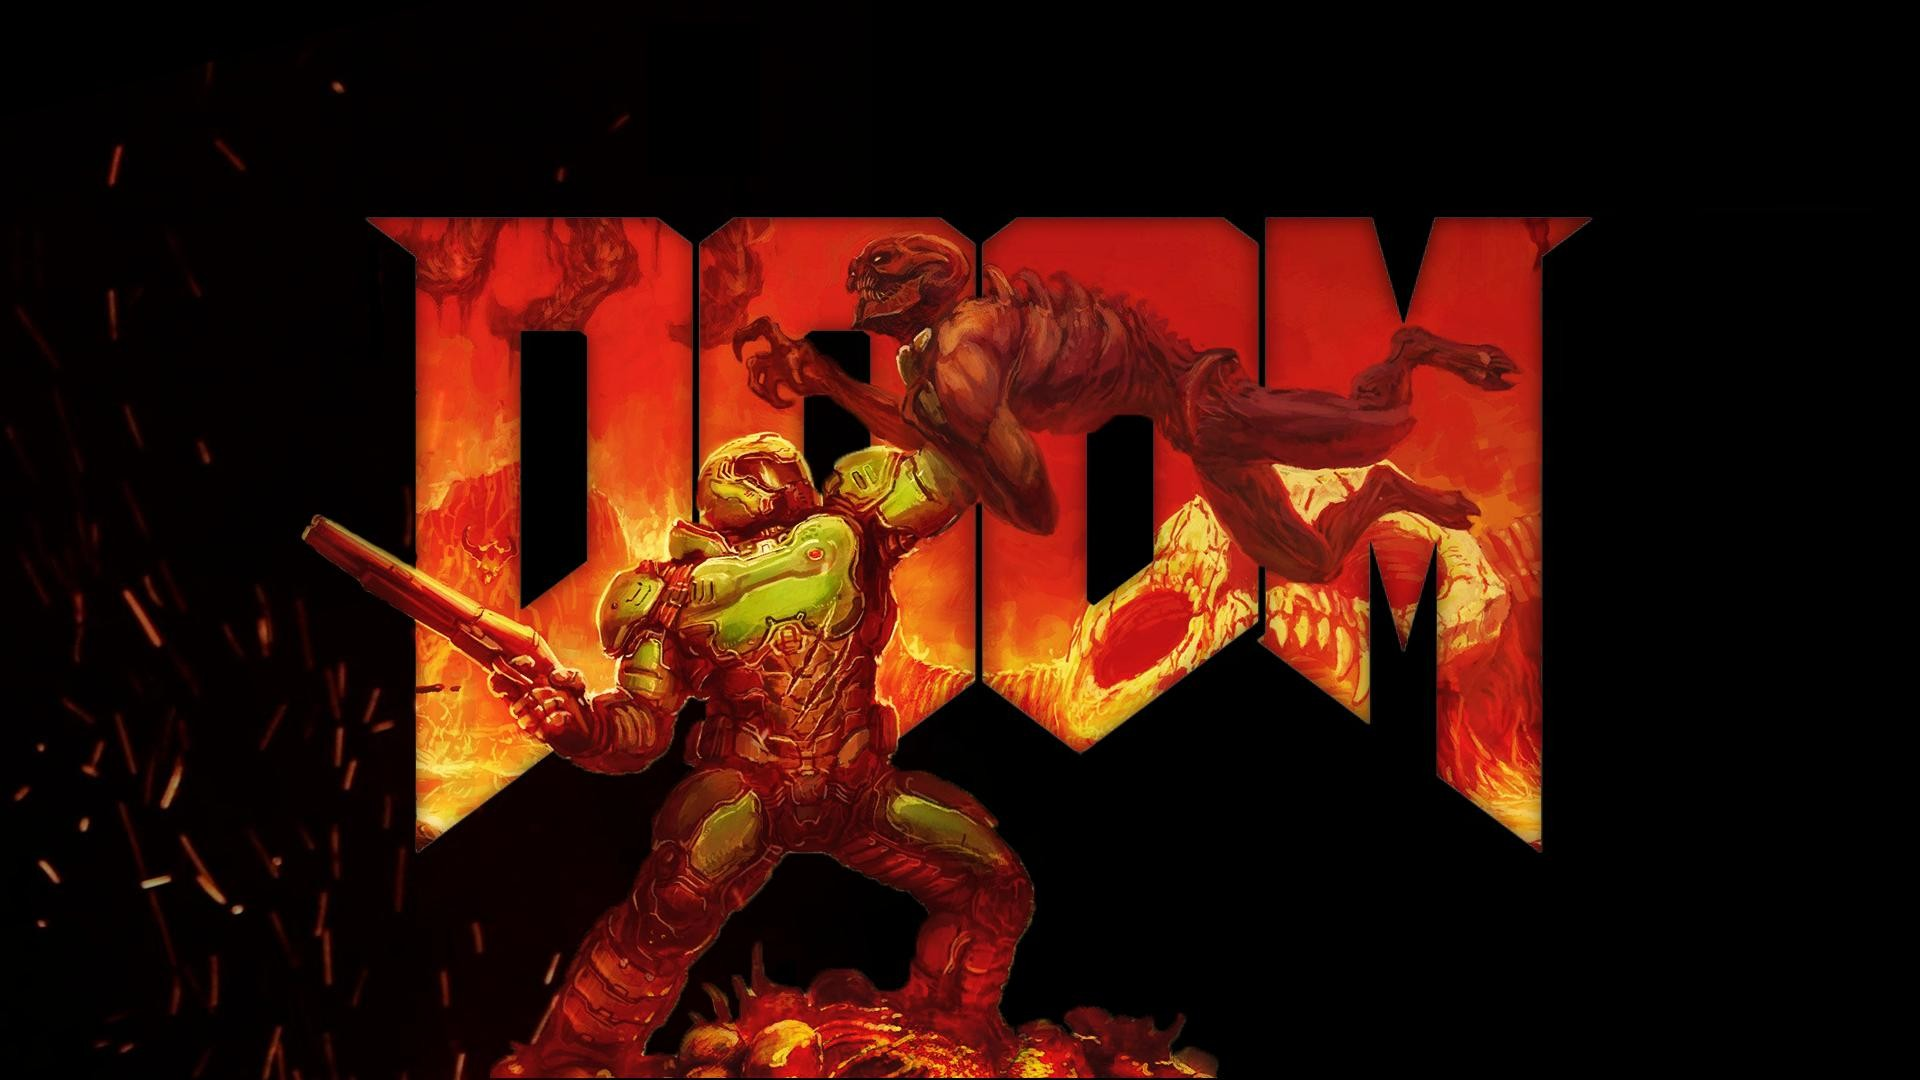 Doom wallpaper ·① Download free HD wallpapers of Doom